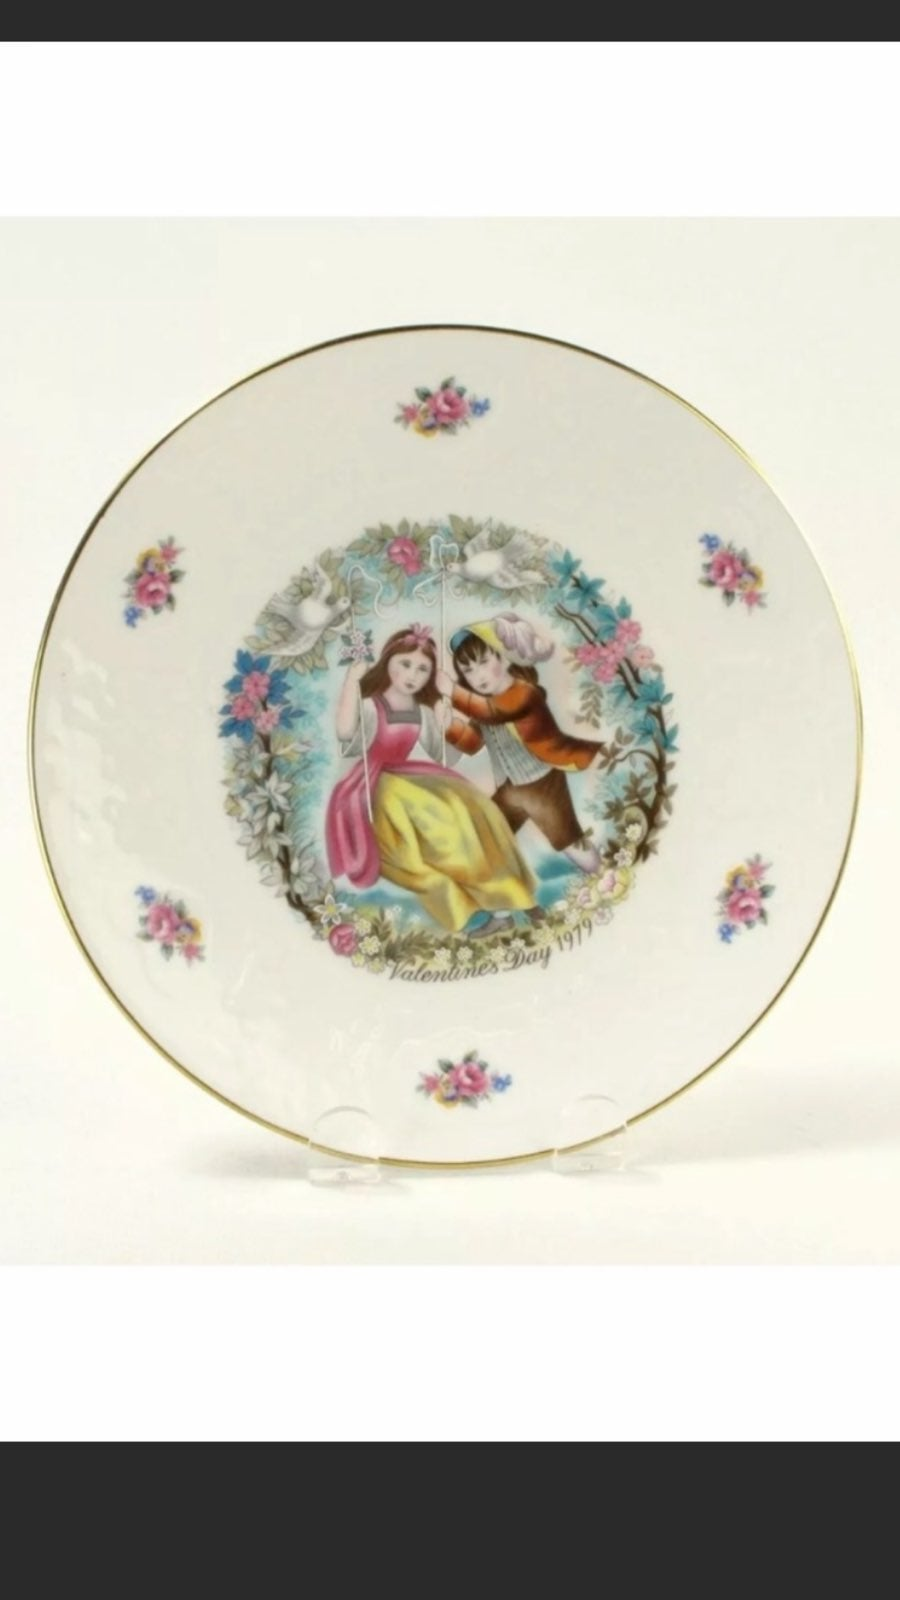 Lot of 2 My Valentine Collector Plates